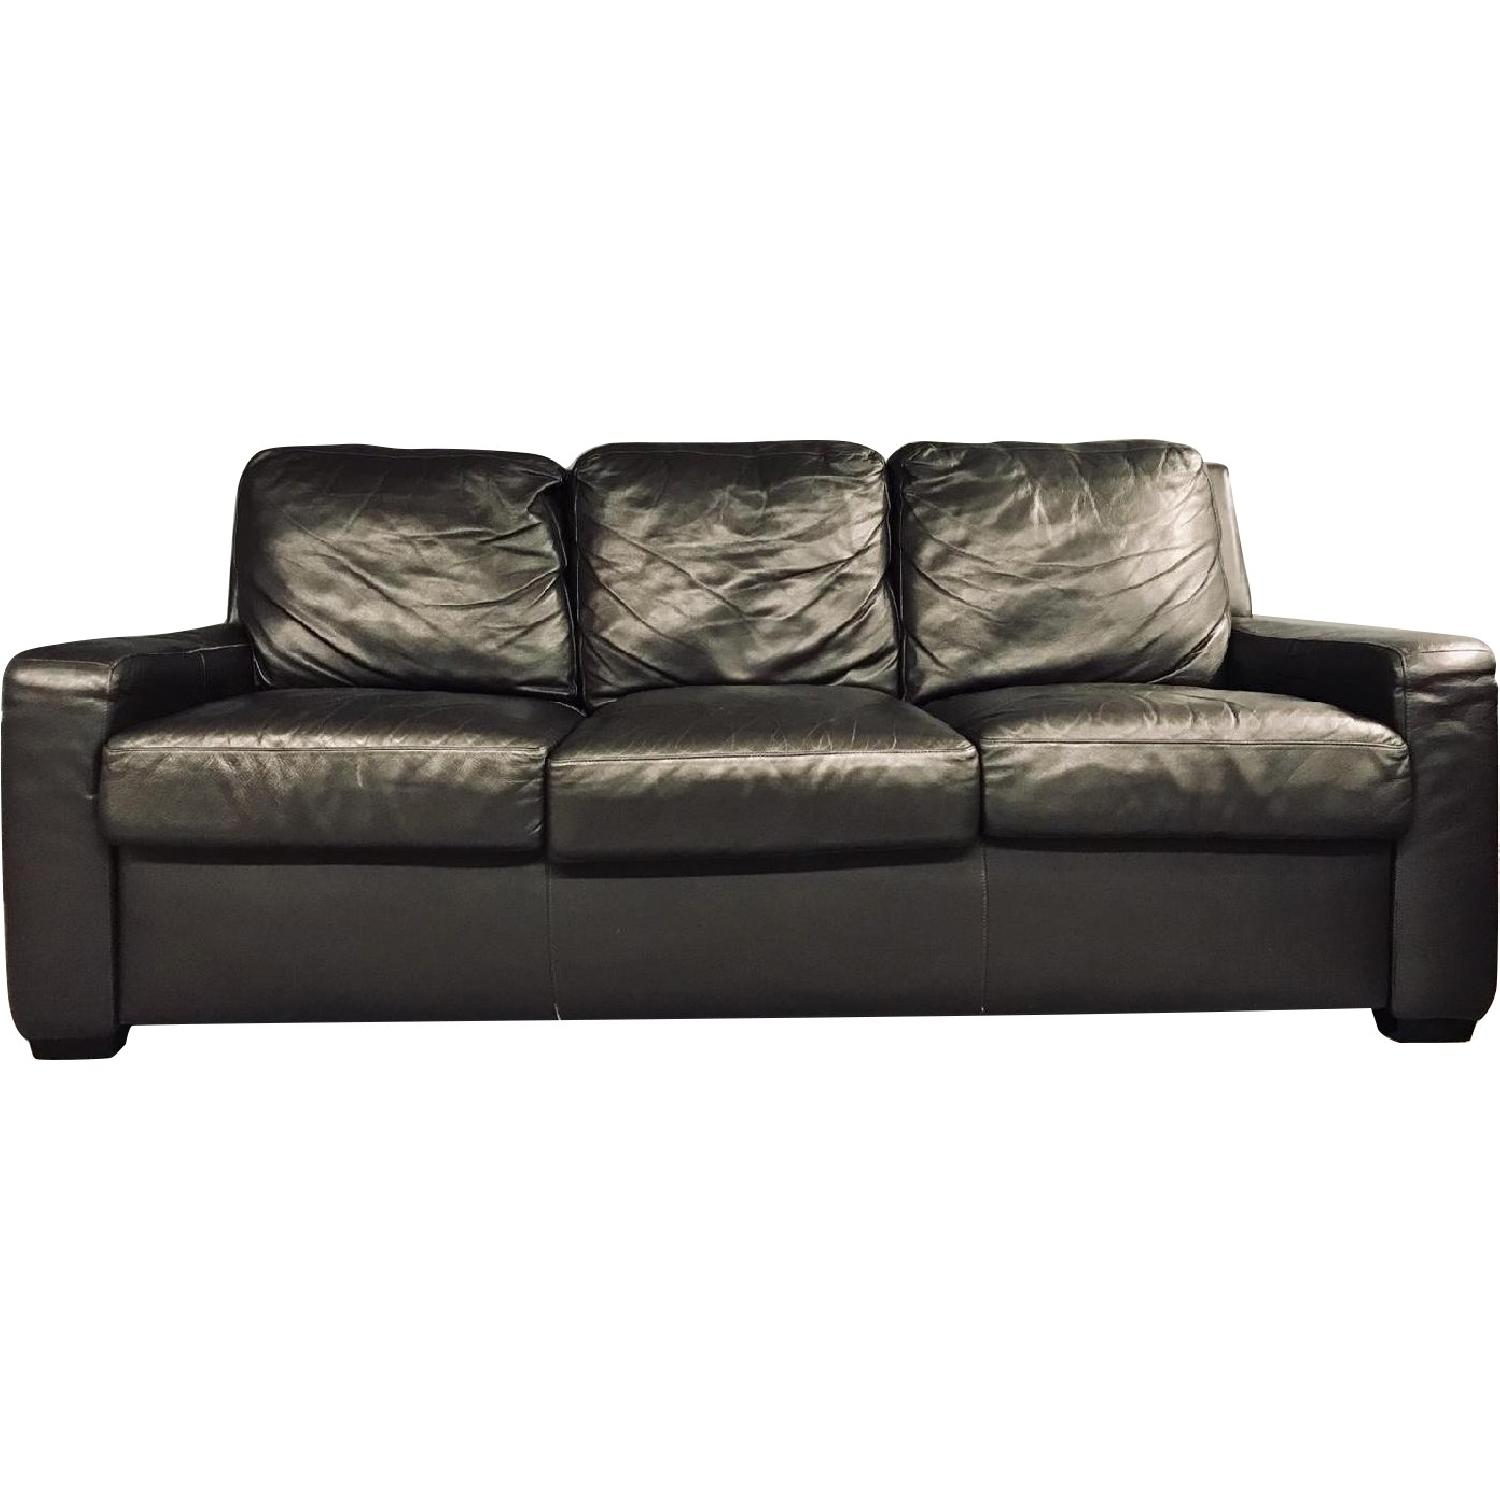 American Sofa Images American Leather Queen Plus Sleeper Sofa